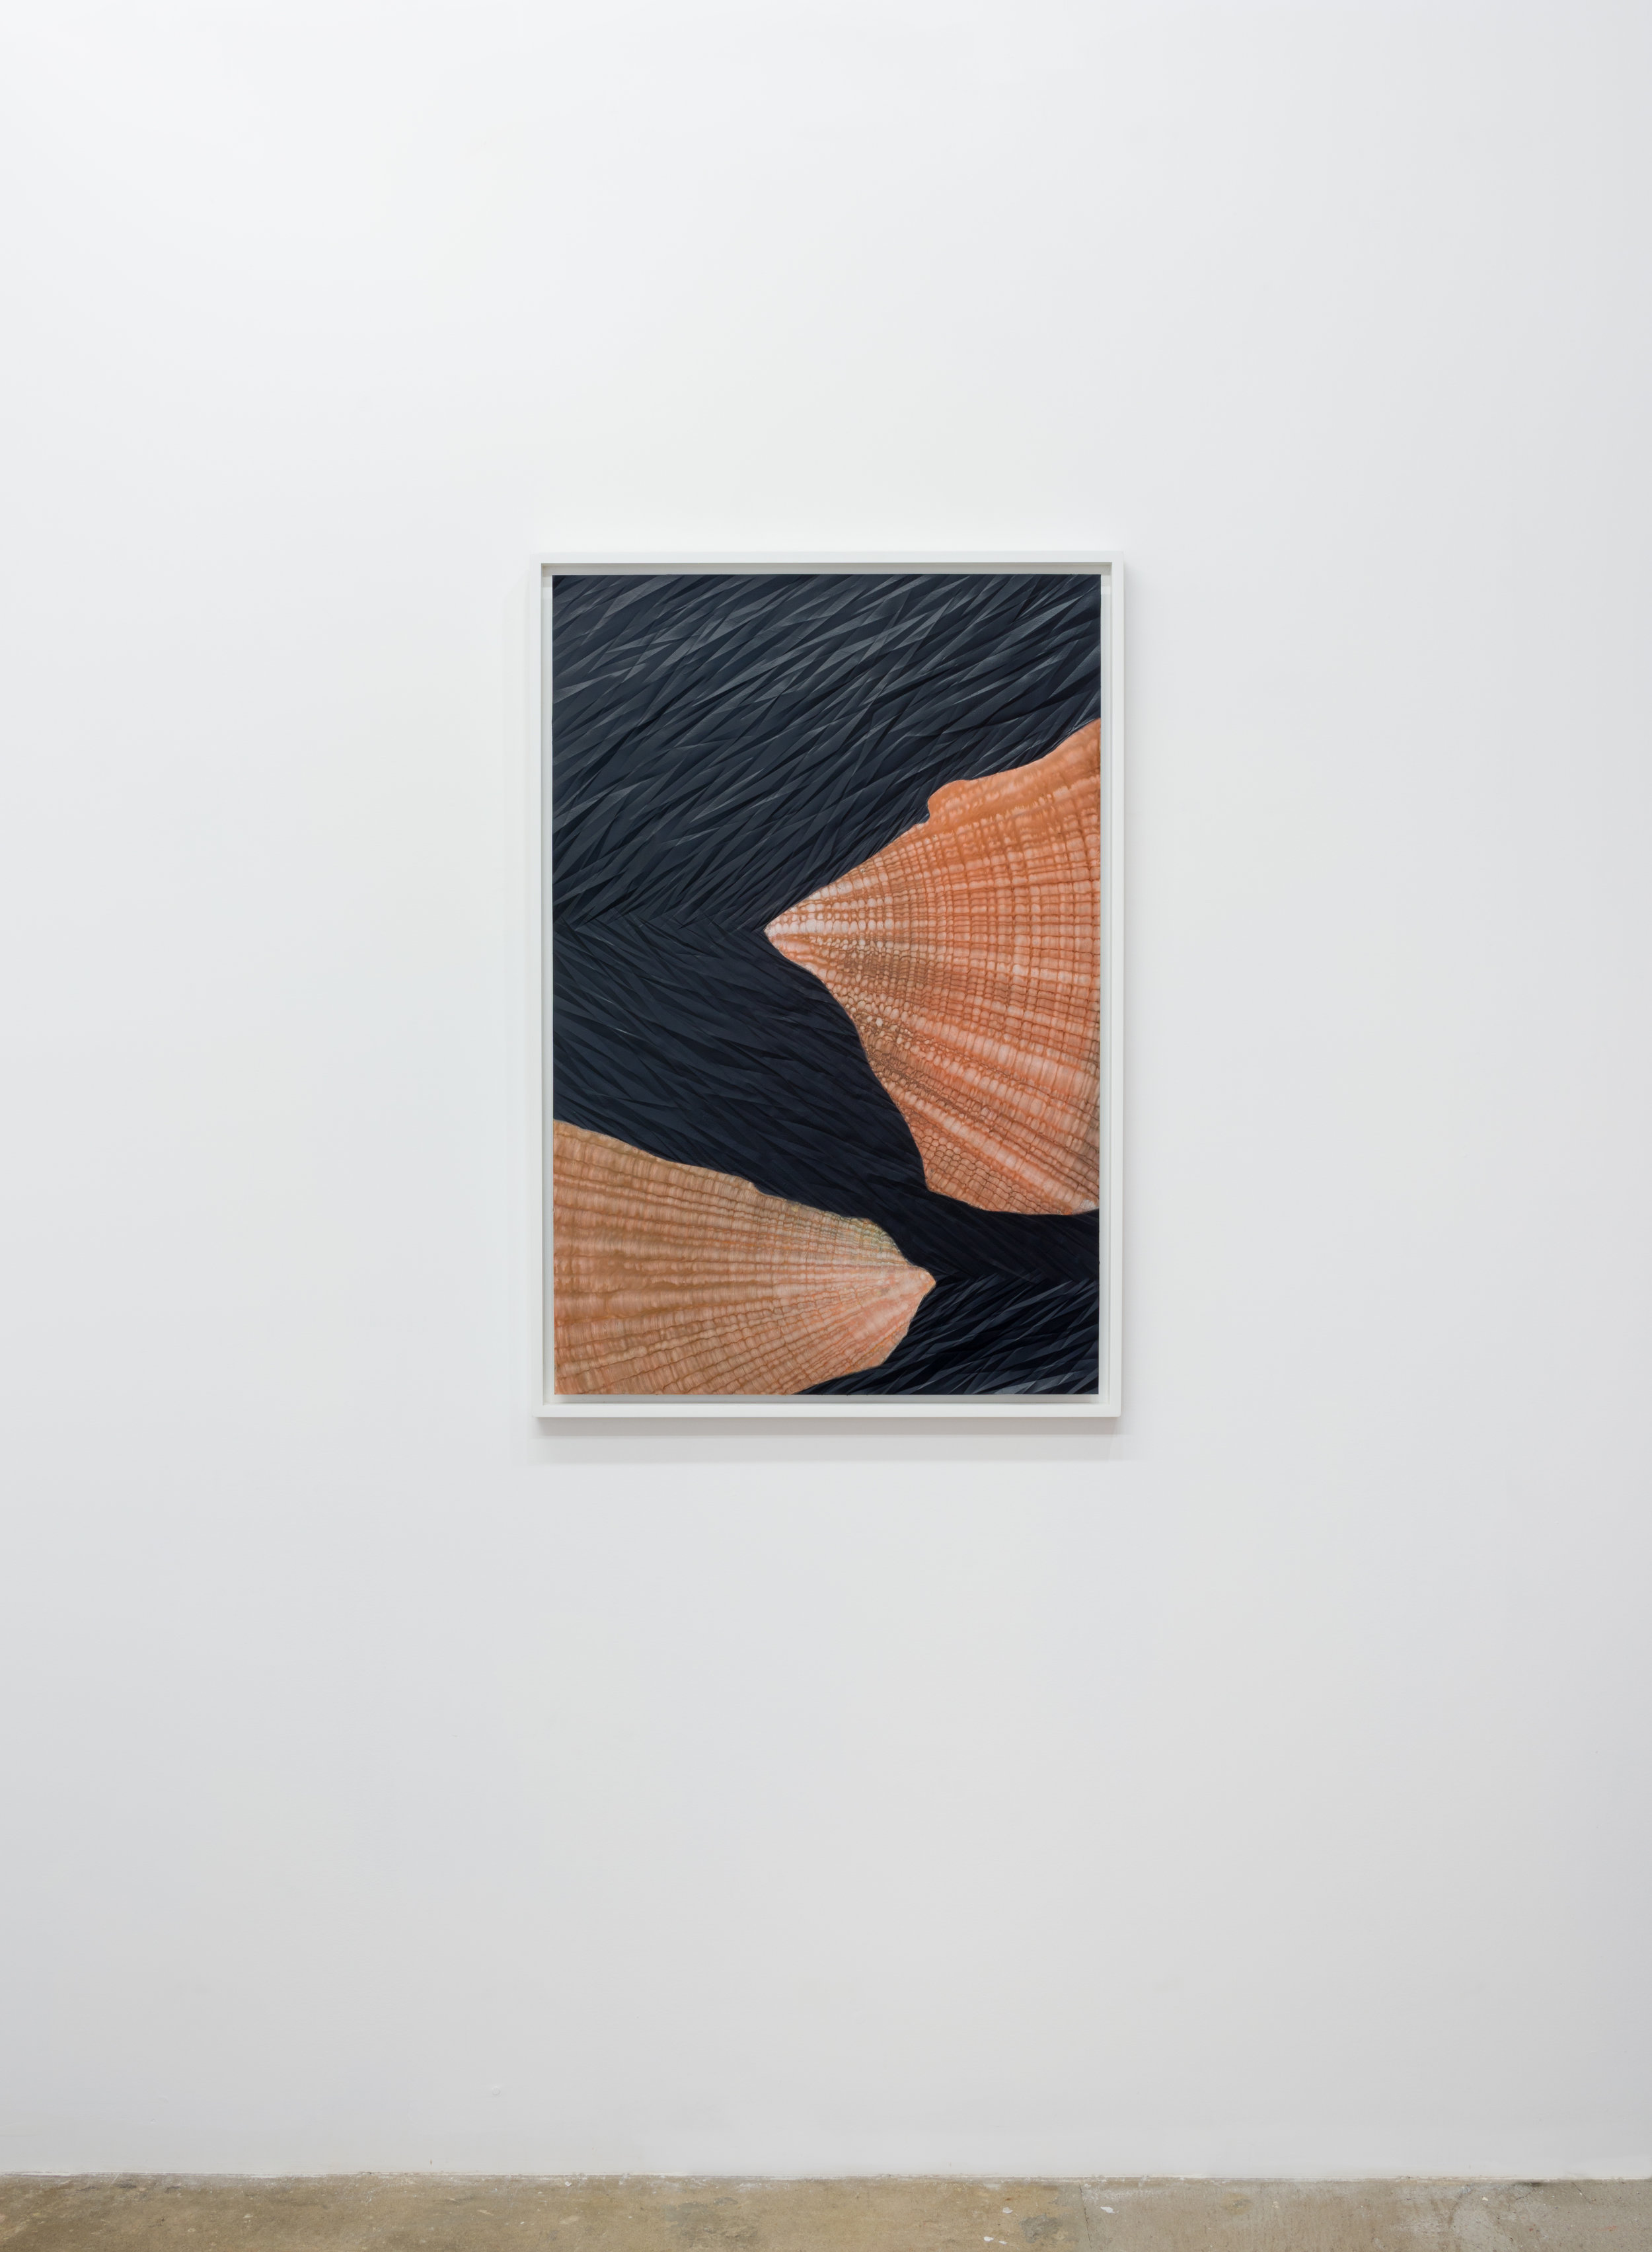 Sandeep Mukherjee,  Untitled (Pincer 2) , 2012. Acrylic, acrylic ink and embossed drawing on duralene, 36 x 24 inches. Photo: Ruben Diaz.